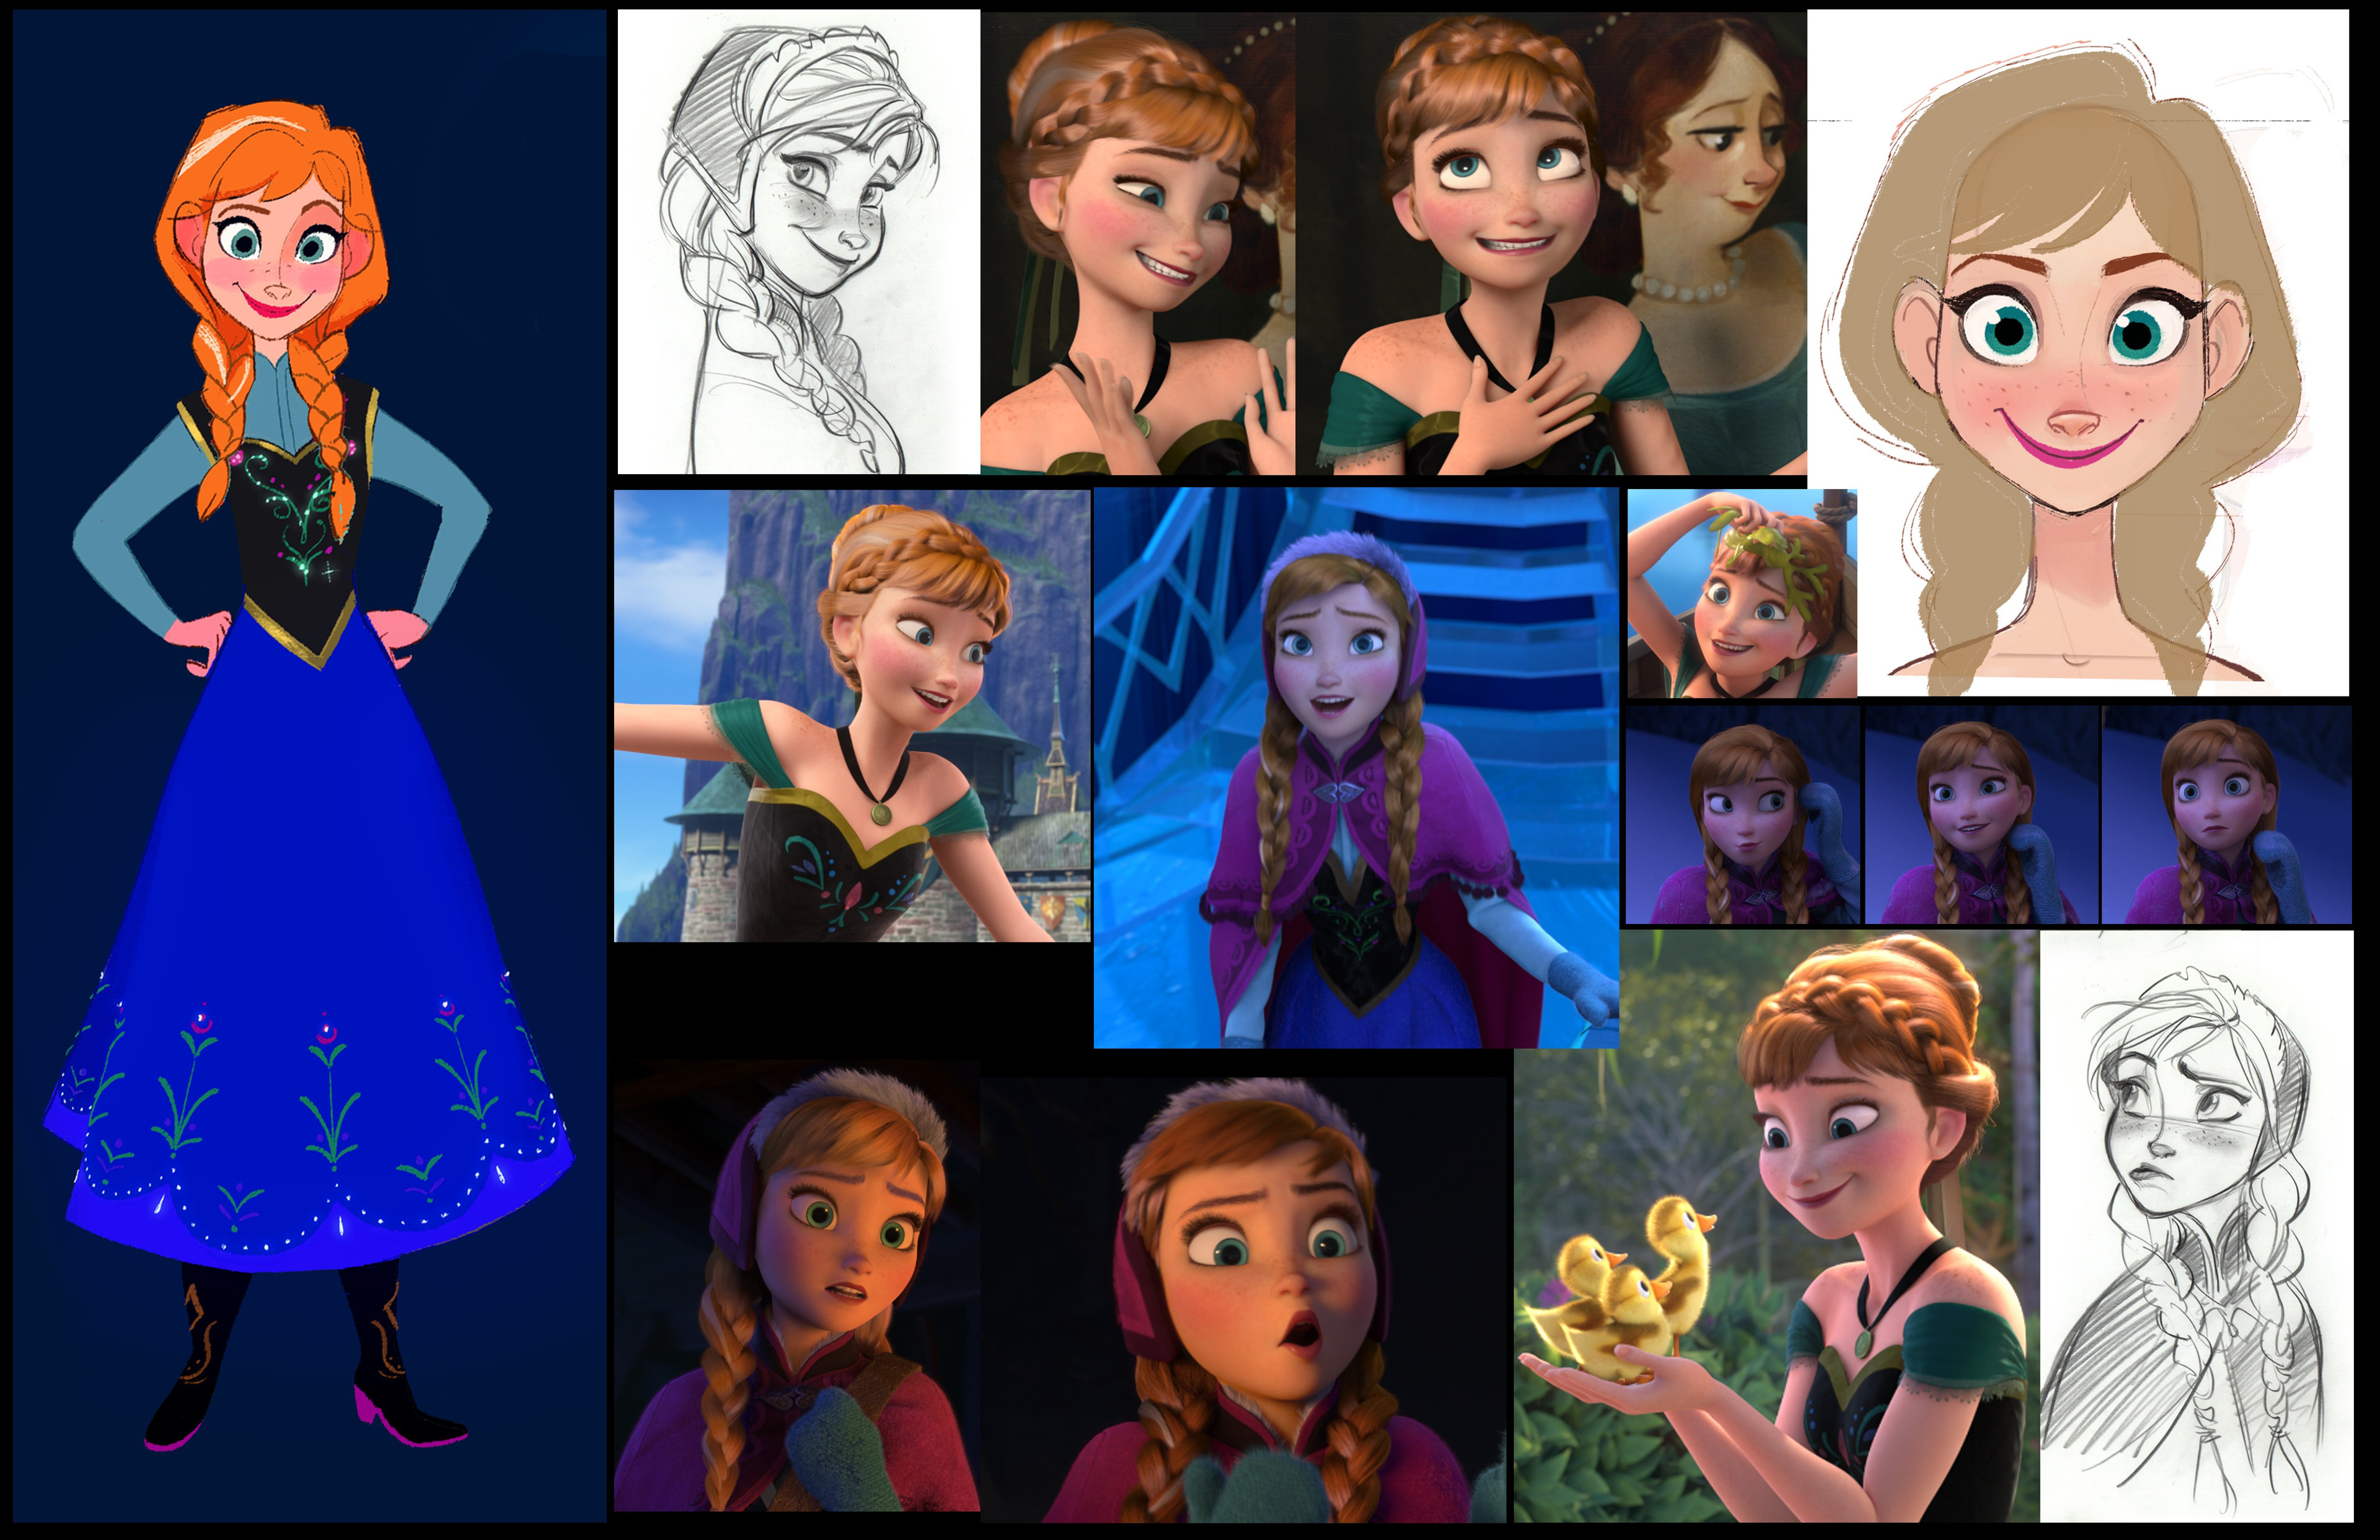 Character Design by Ami Thomson + Frozen references and Jin Kim drawings.